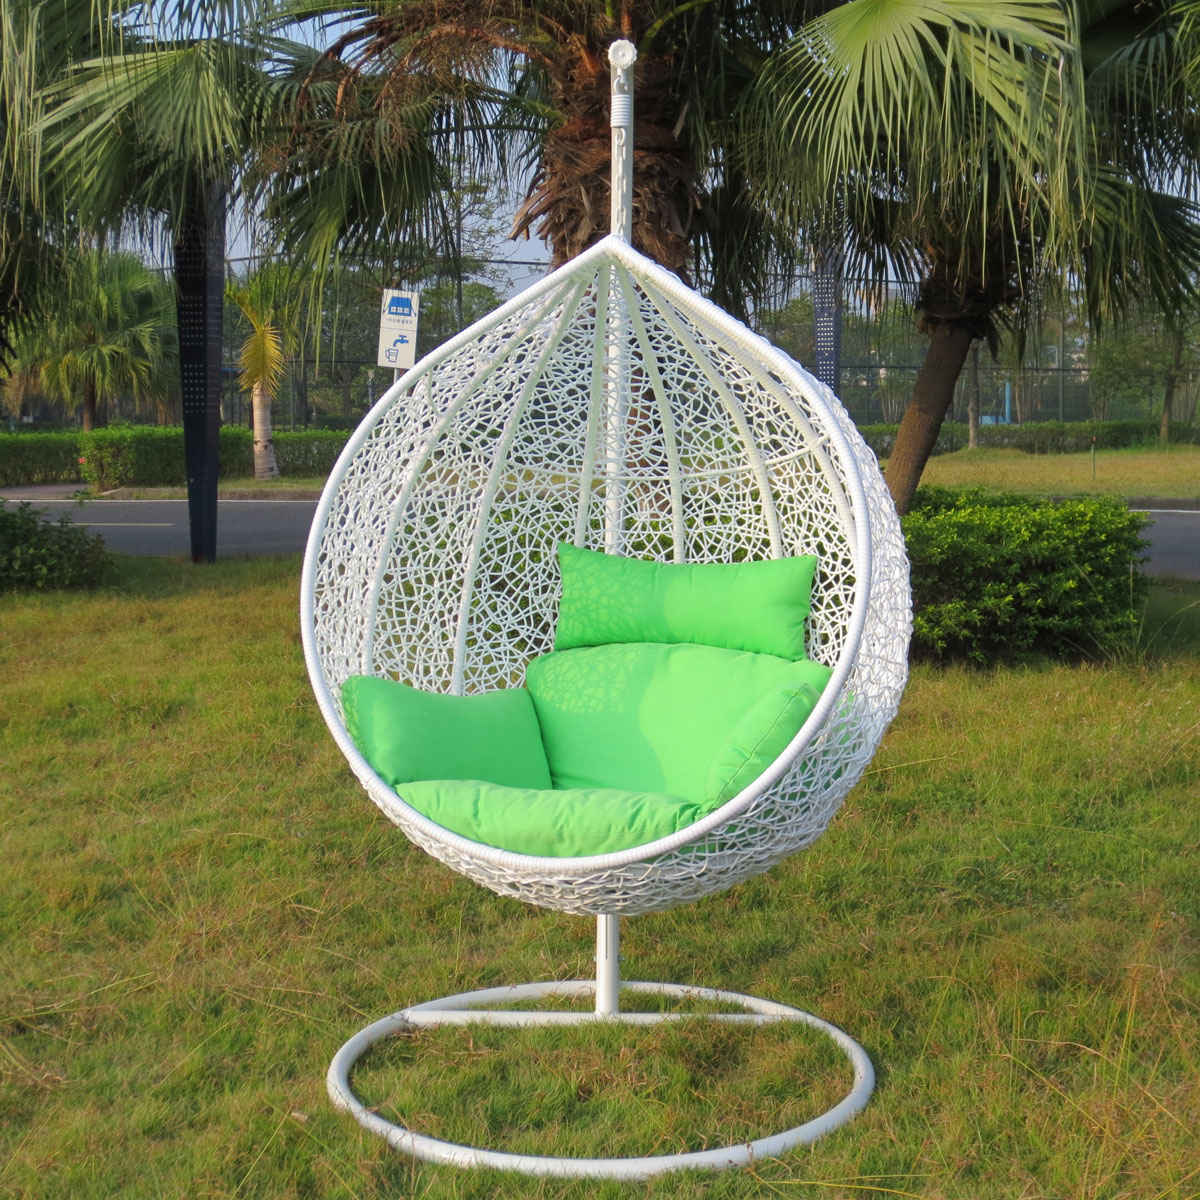 Bird Nest Chair Us 693 54 Rattan Furniture Indoor And Outdoor Rocking Chair Bird Nest Hanging Basket Hanging Chair Rattan Chair Rattan Hanging Basket In Patio